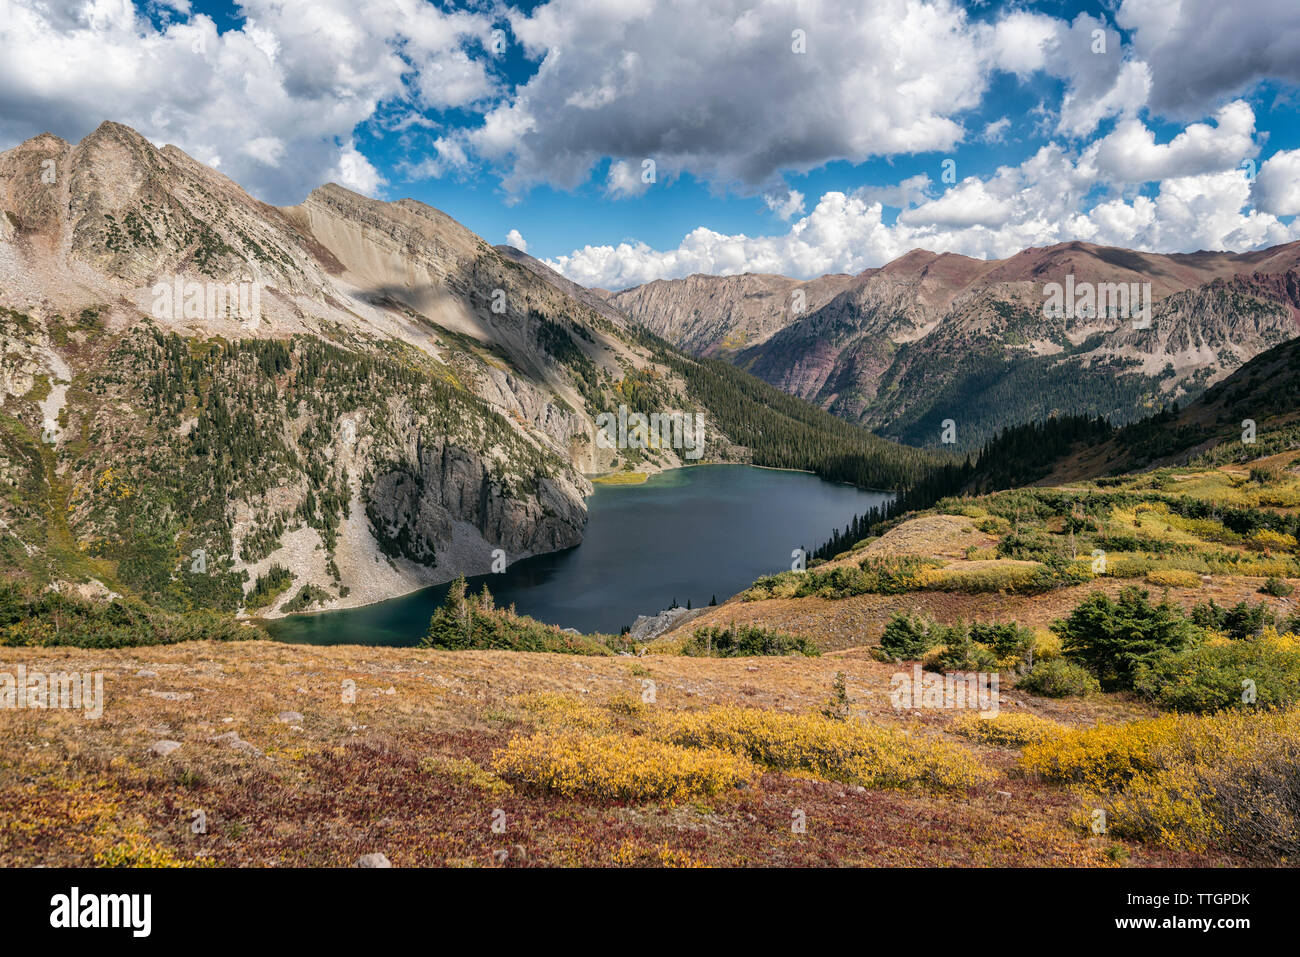 Snowmass Stock Photos & Snowmass Stock Images - Alamy